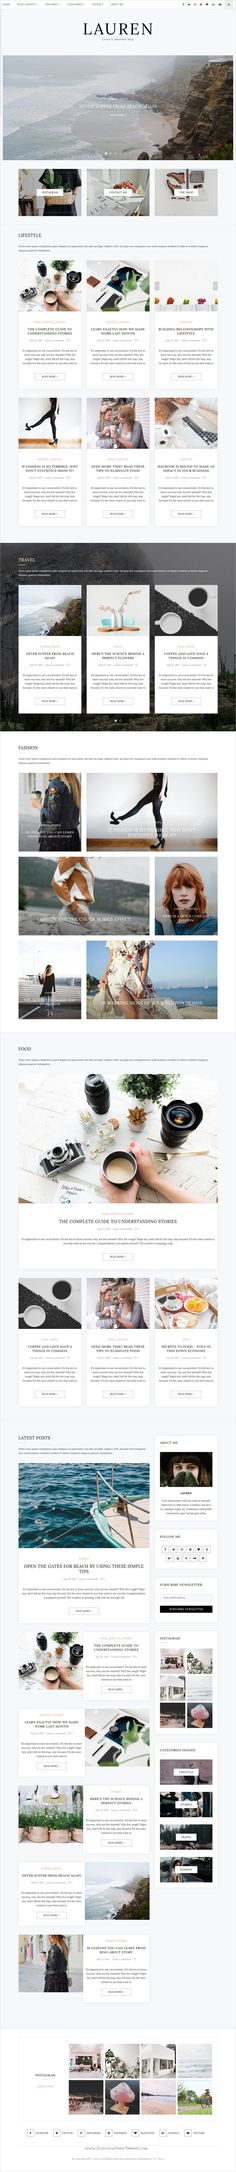 Lauren is clean, minimal and modern design 10in1 responsive #WordPress #blog theme for creative #writer and bloggers website download now..